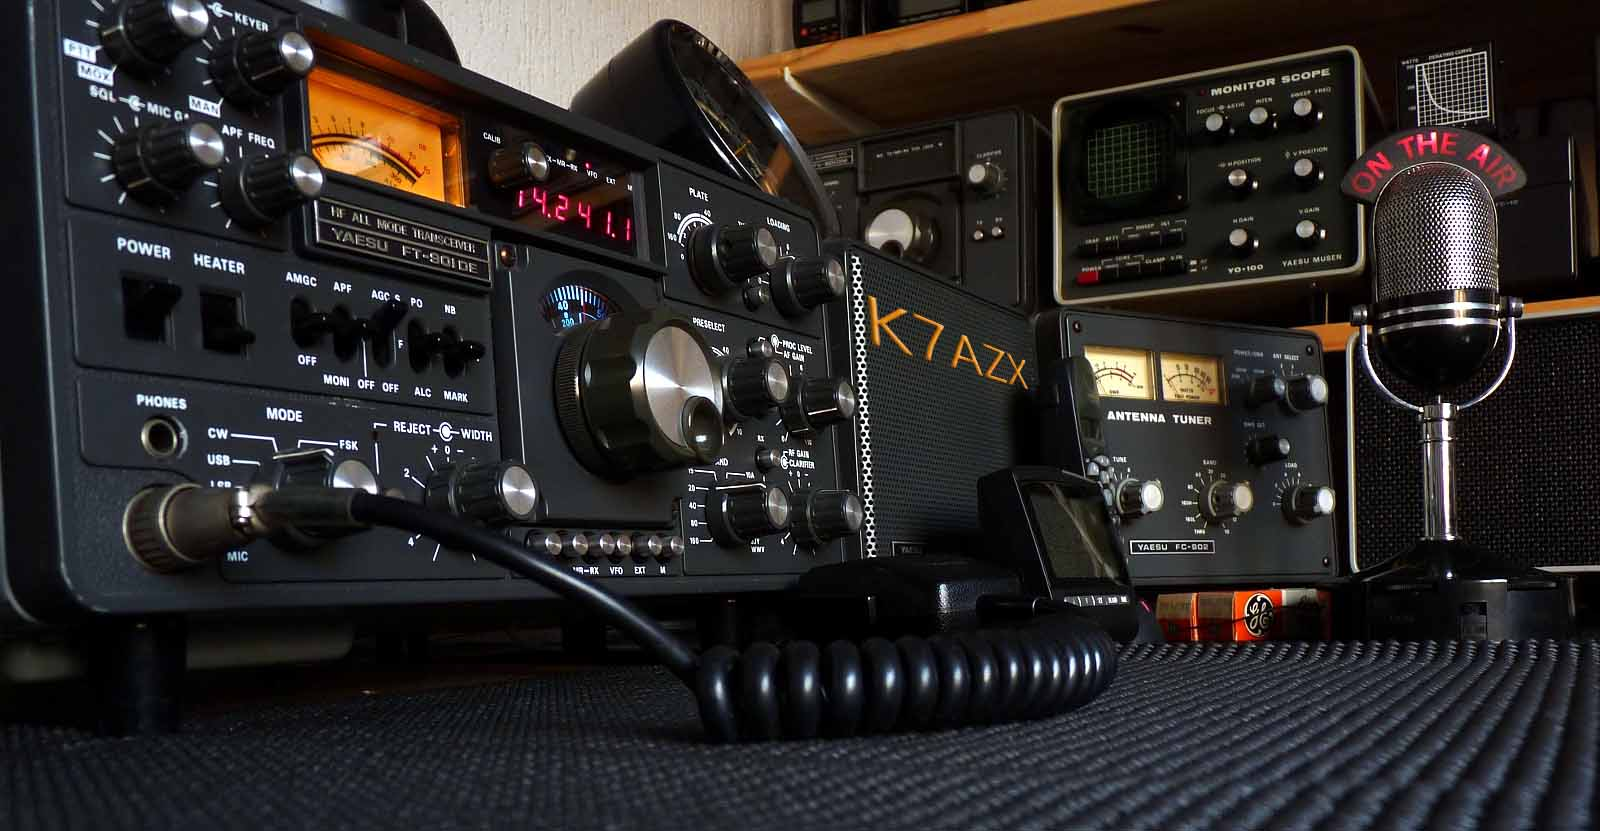 yeasu rig with K7AZX logo